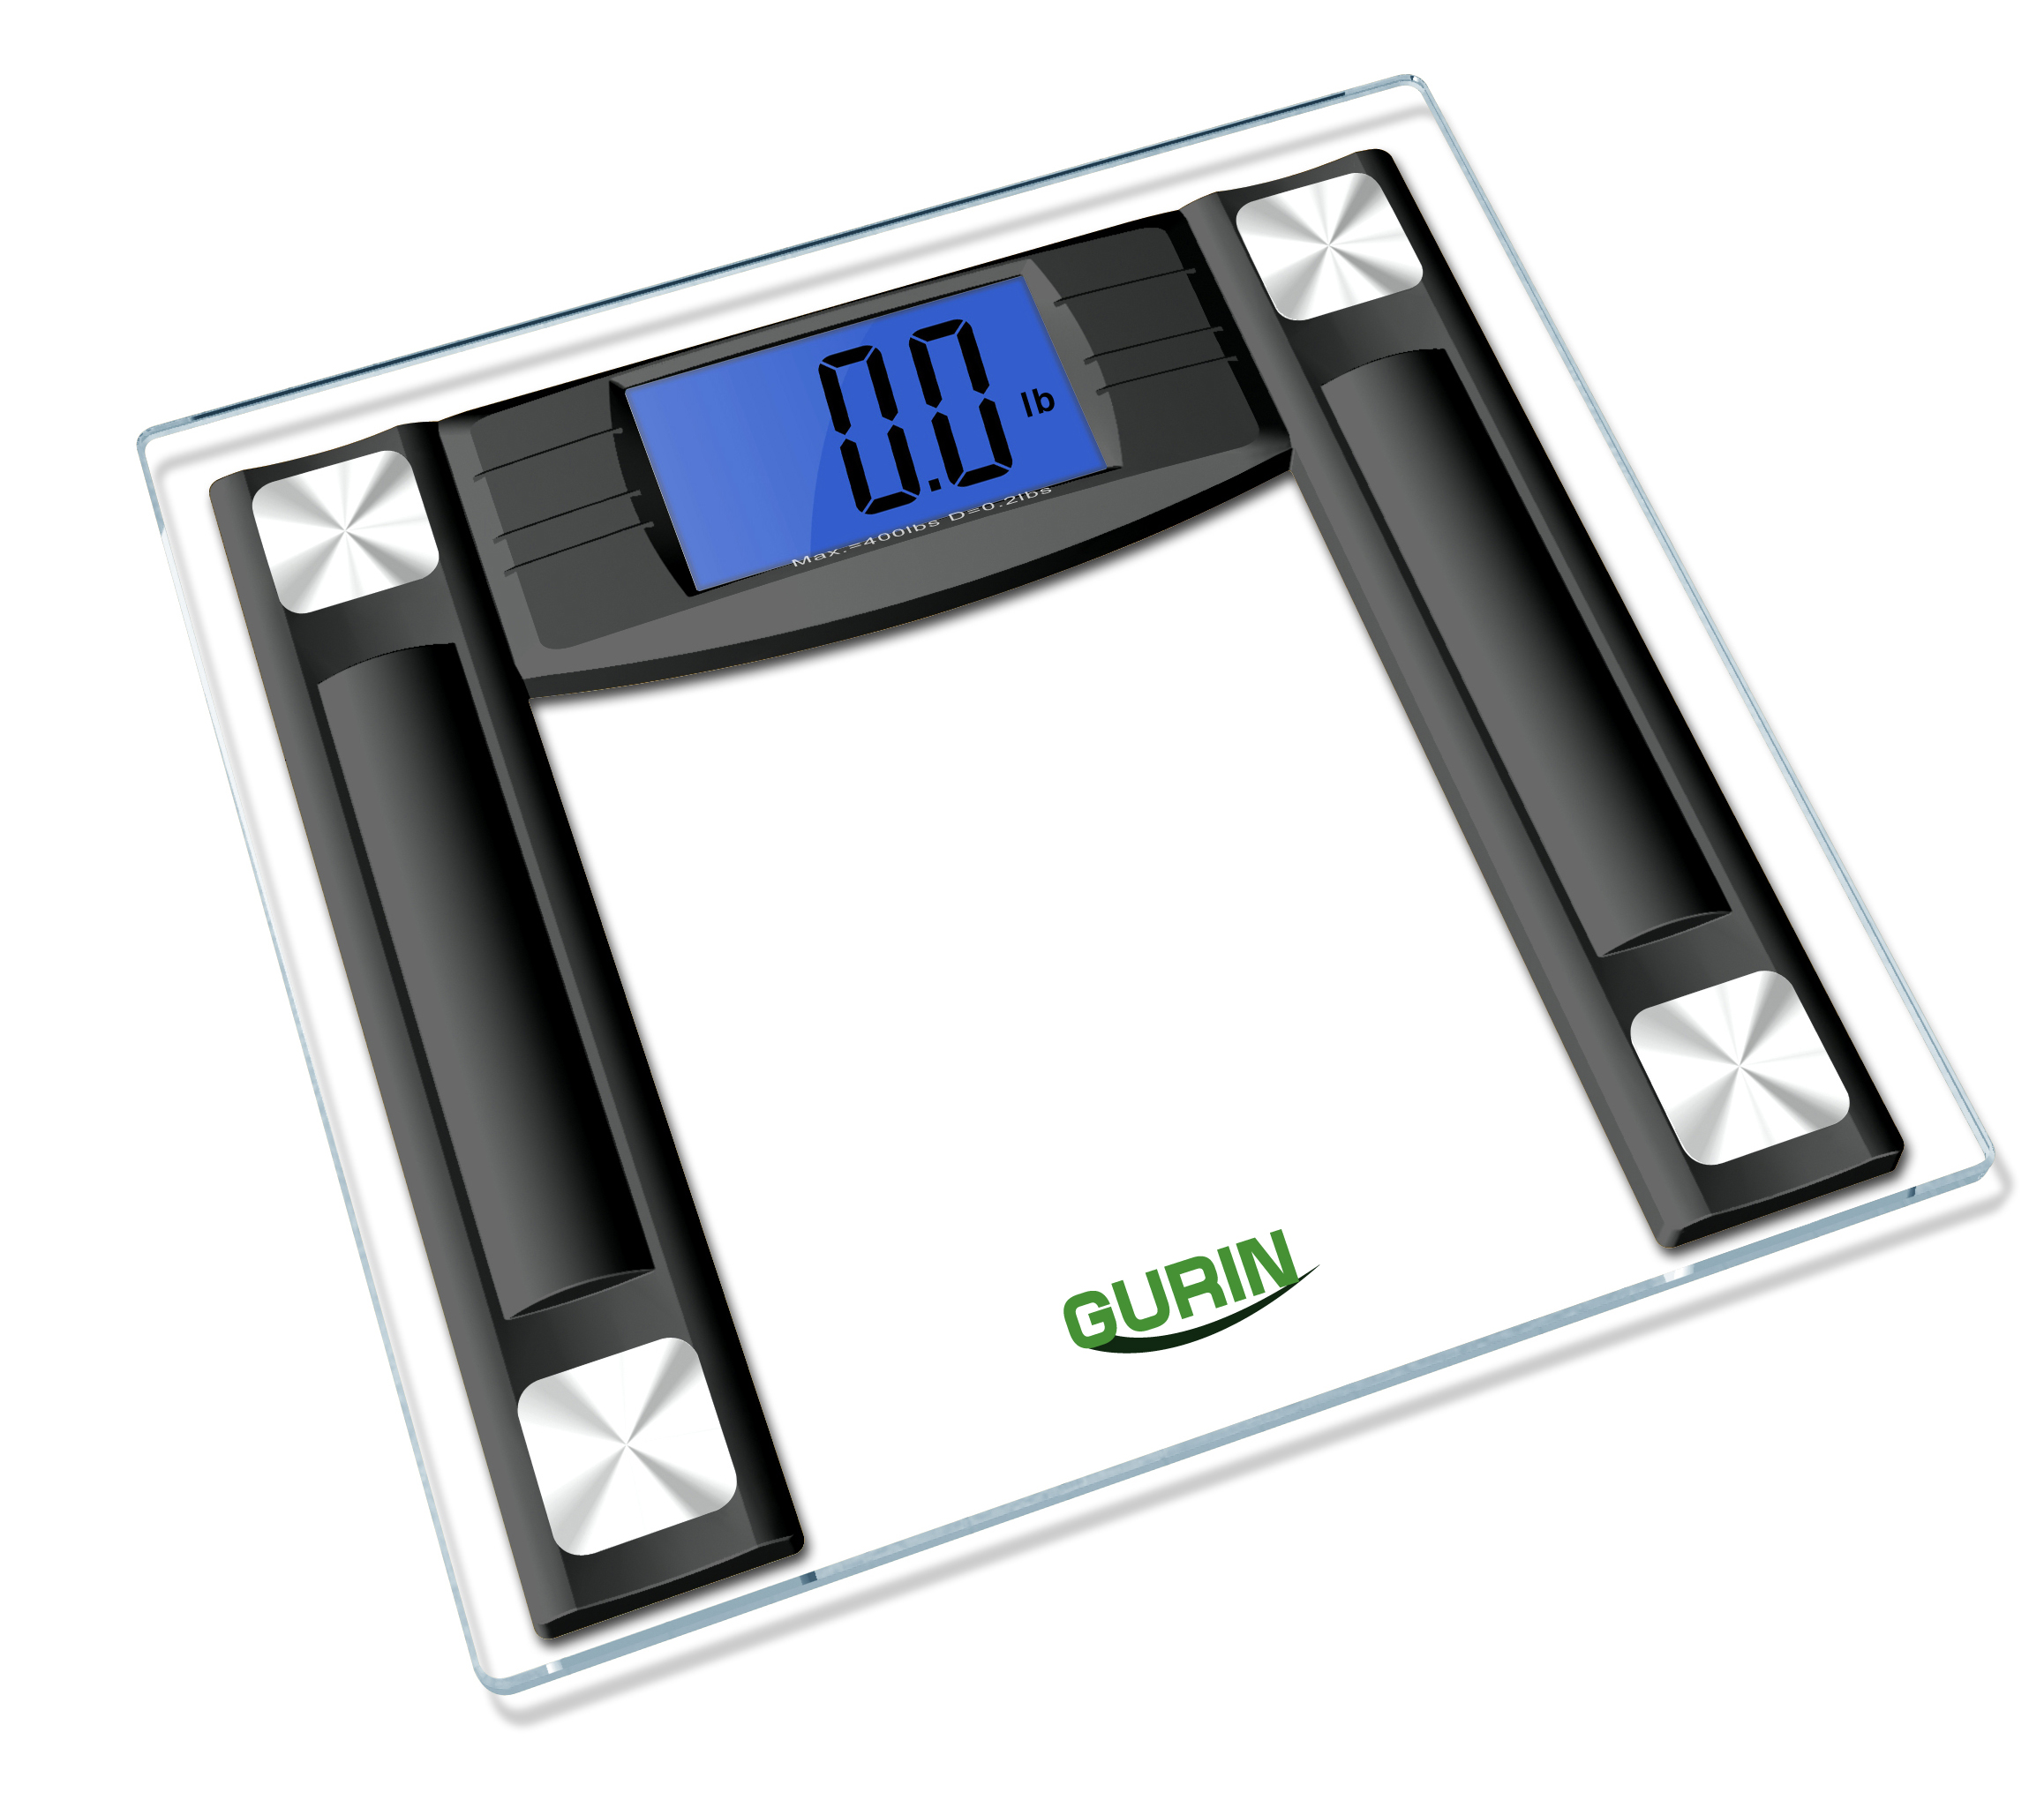 fitness singapore scale connected ade norman bathroom digital and wellbeing scales be weight harvey health